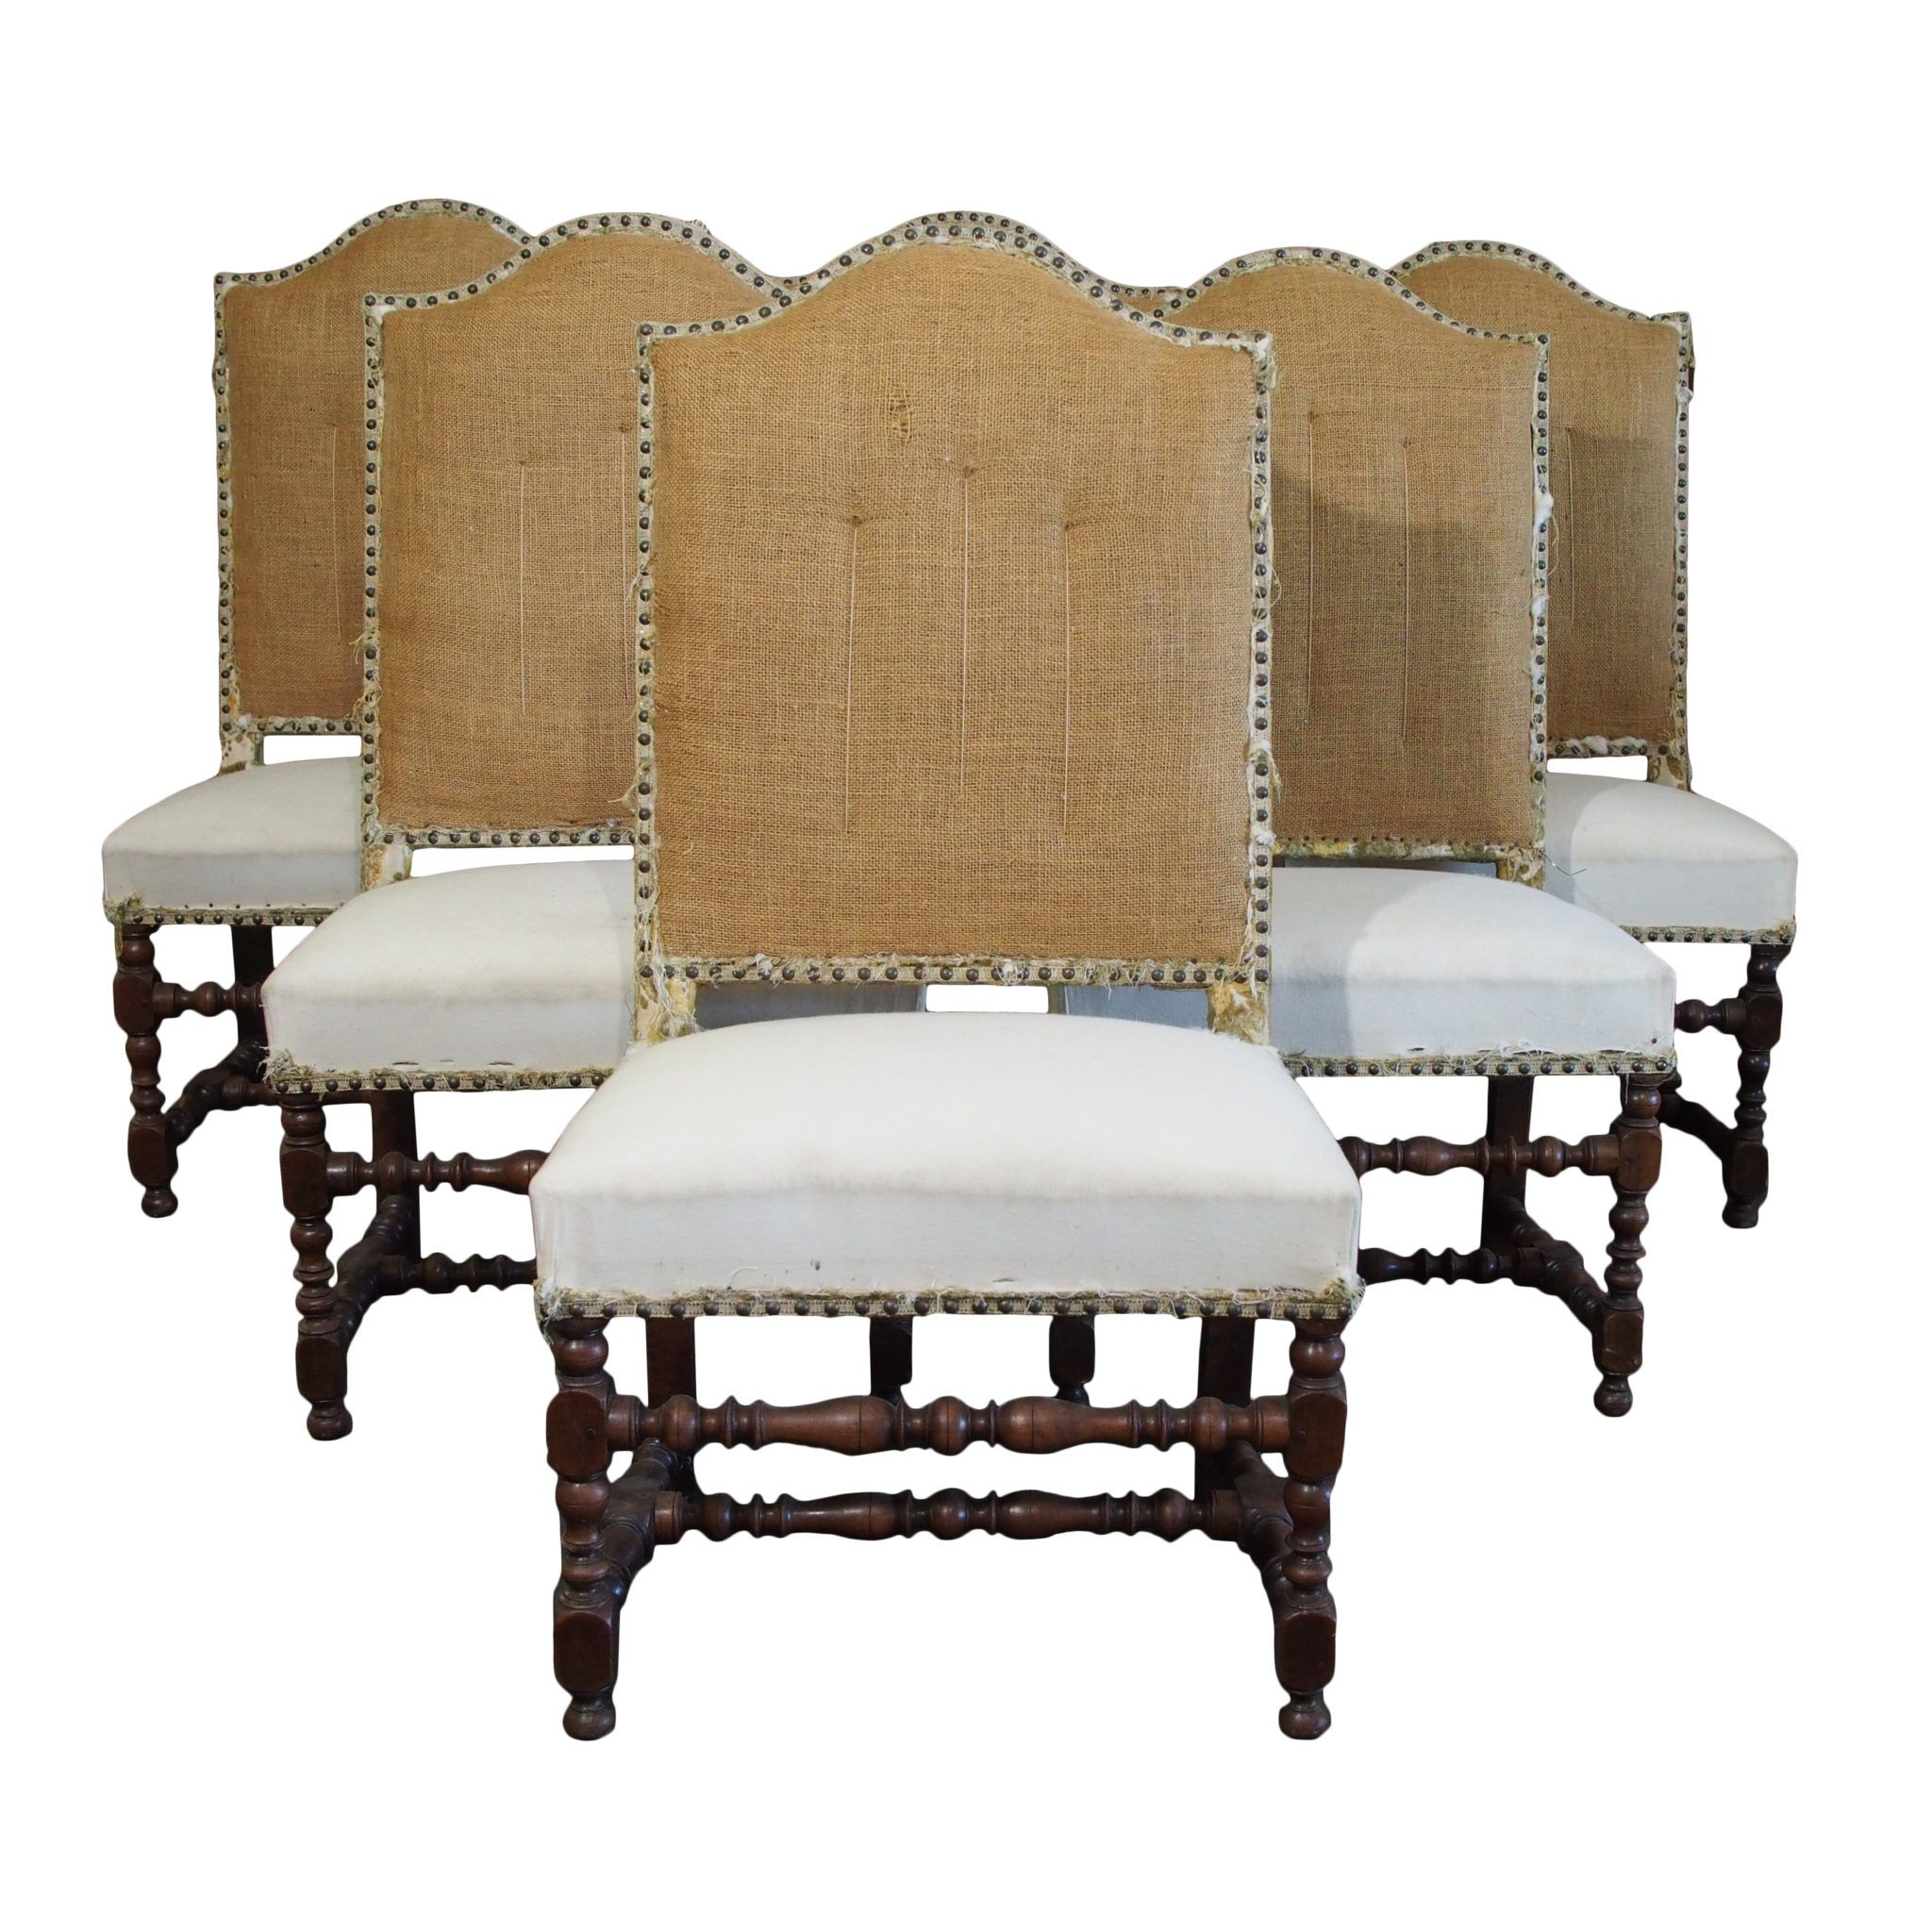 Charmant Ornate Carved Louis XVII Style Chairs.